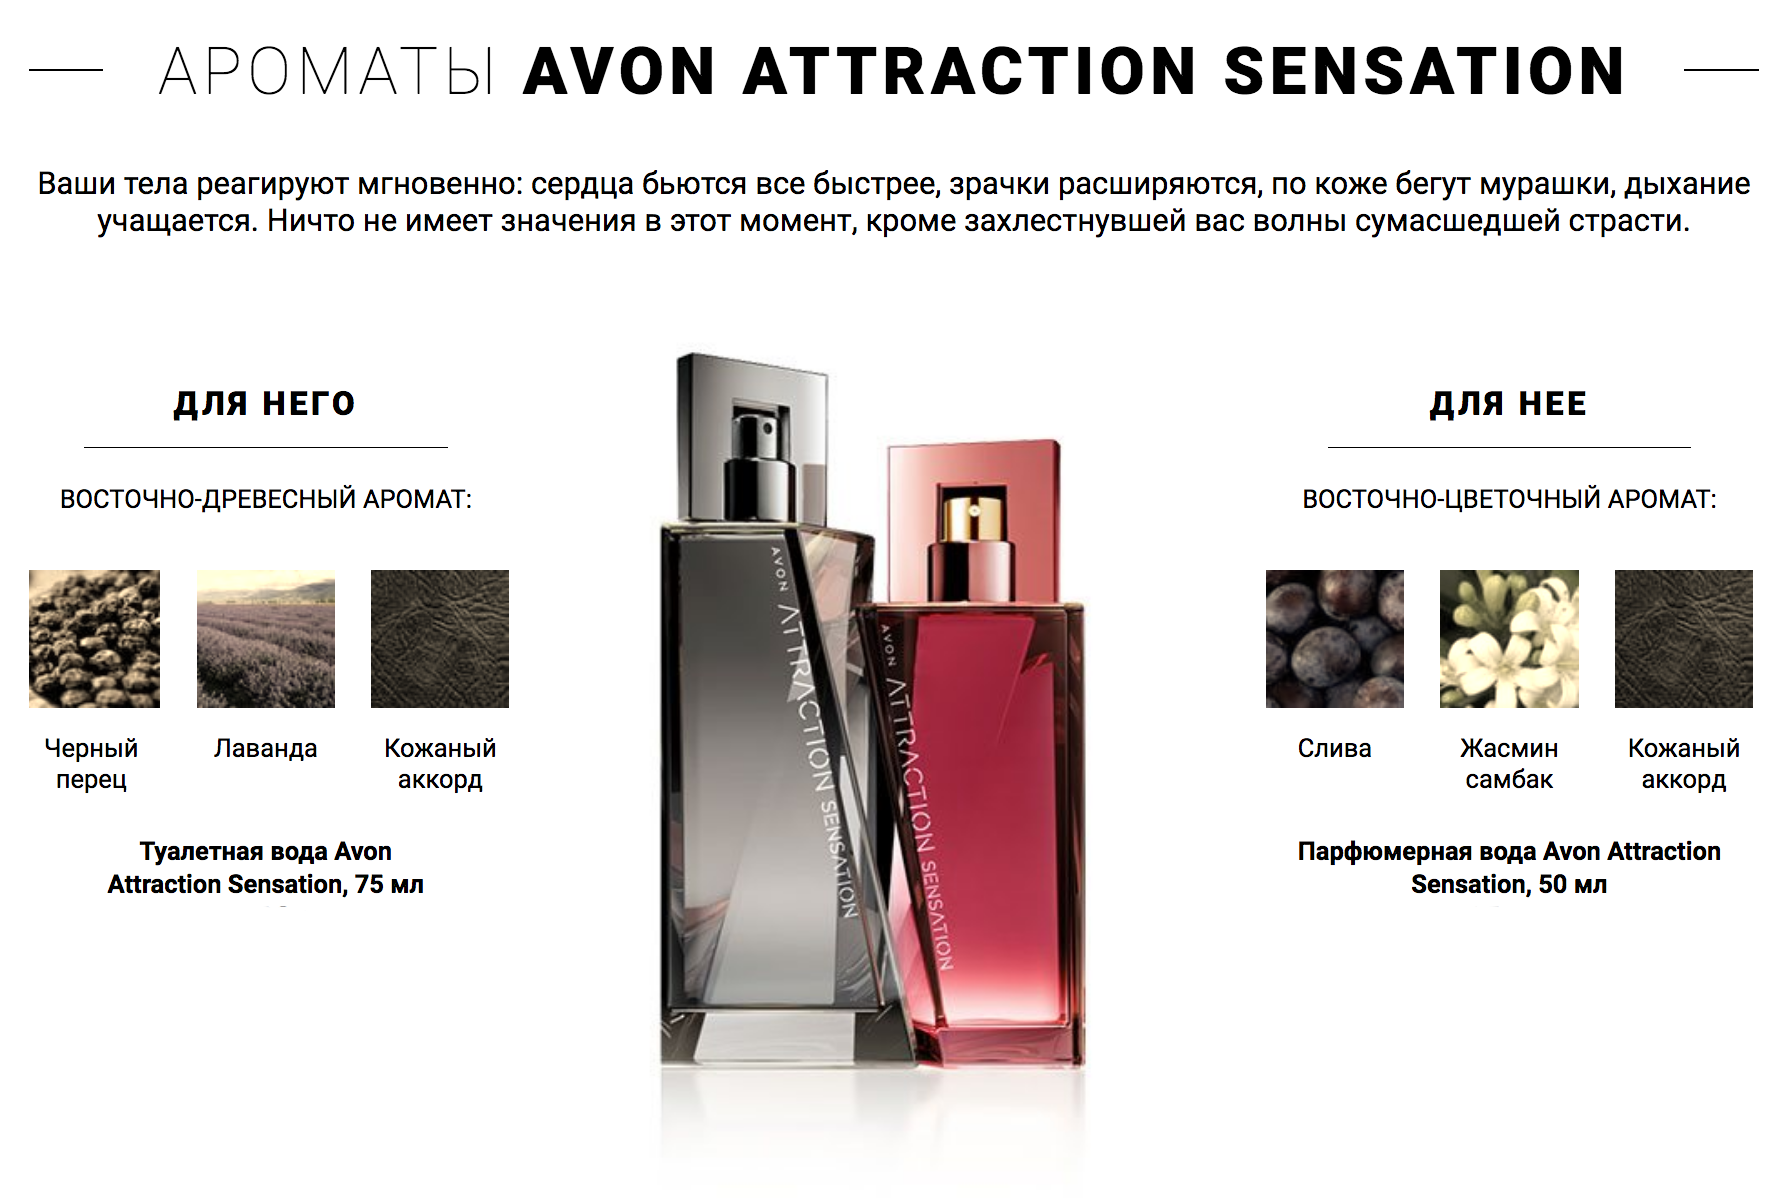 AVON ATTRACTION SENSATION